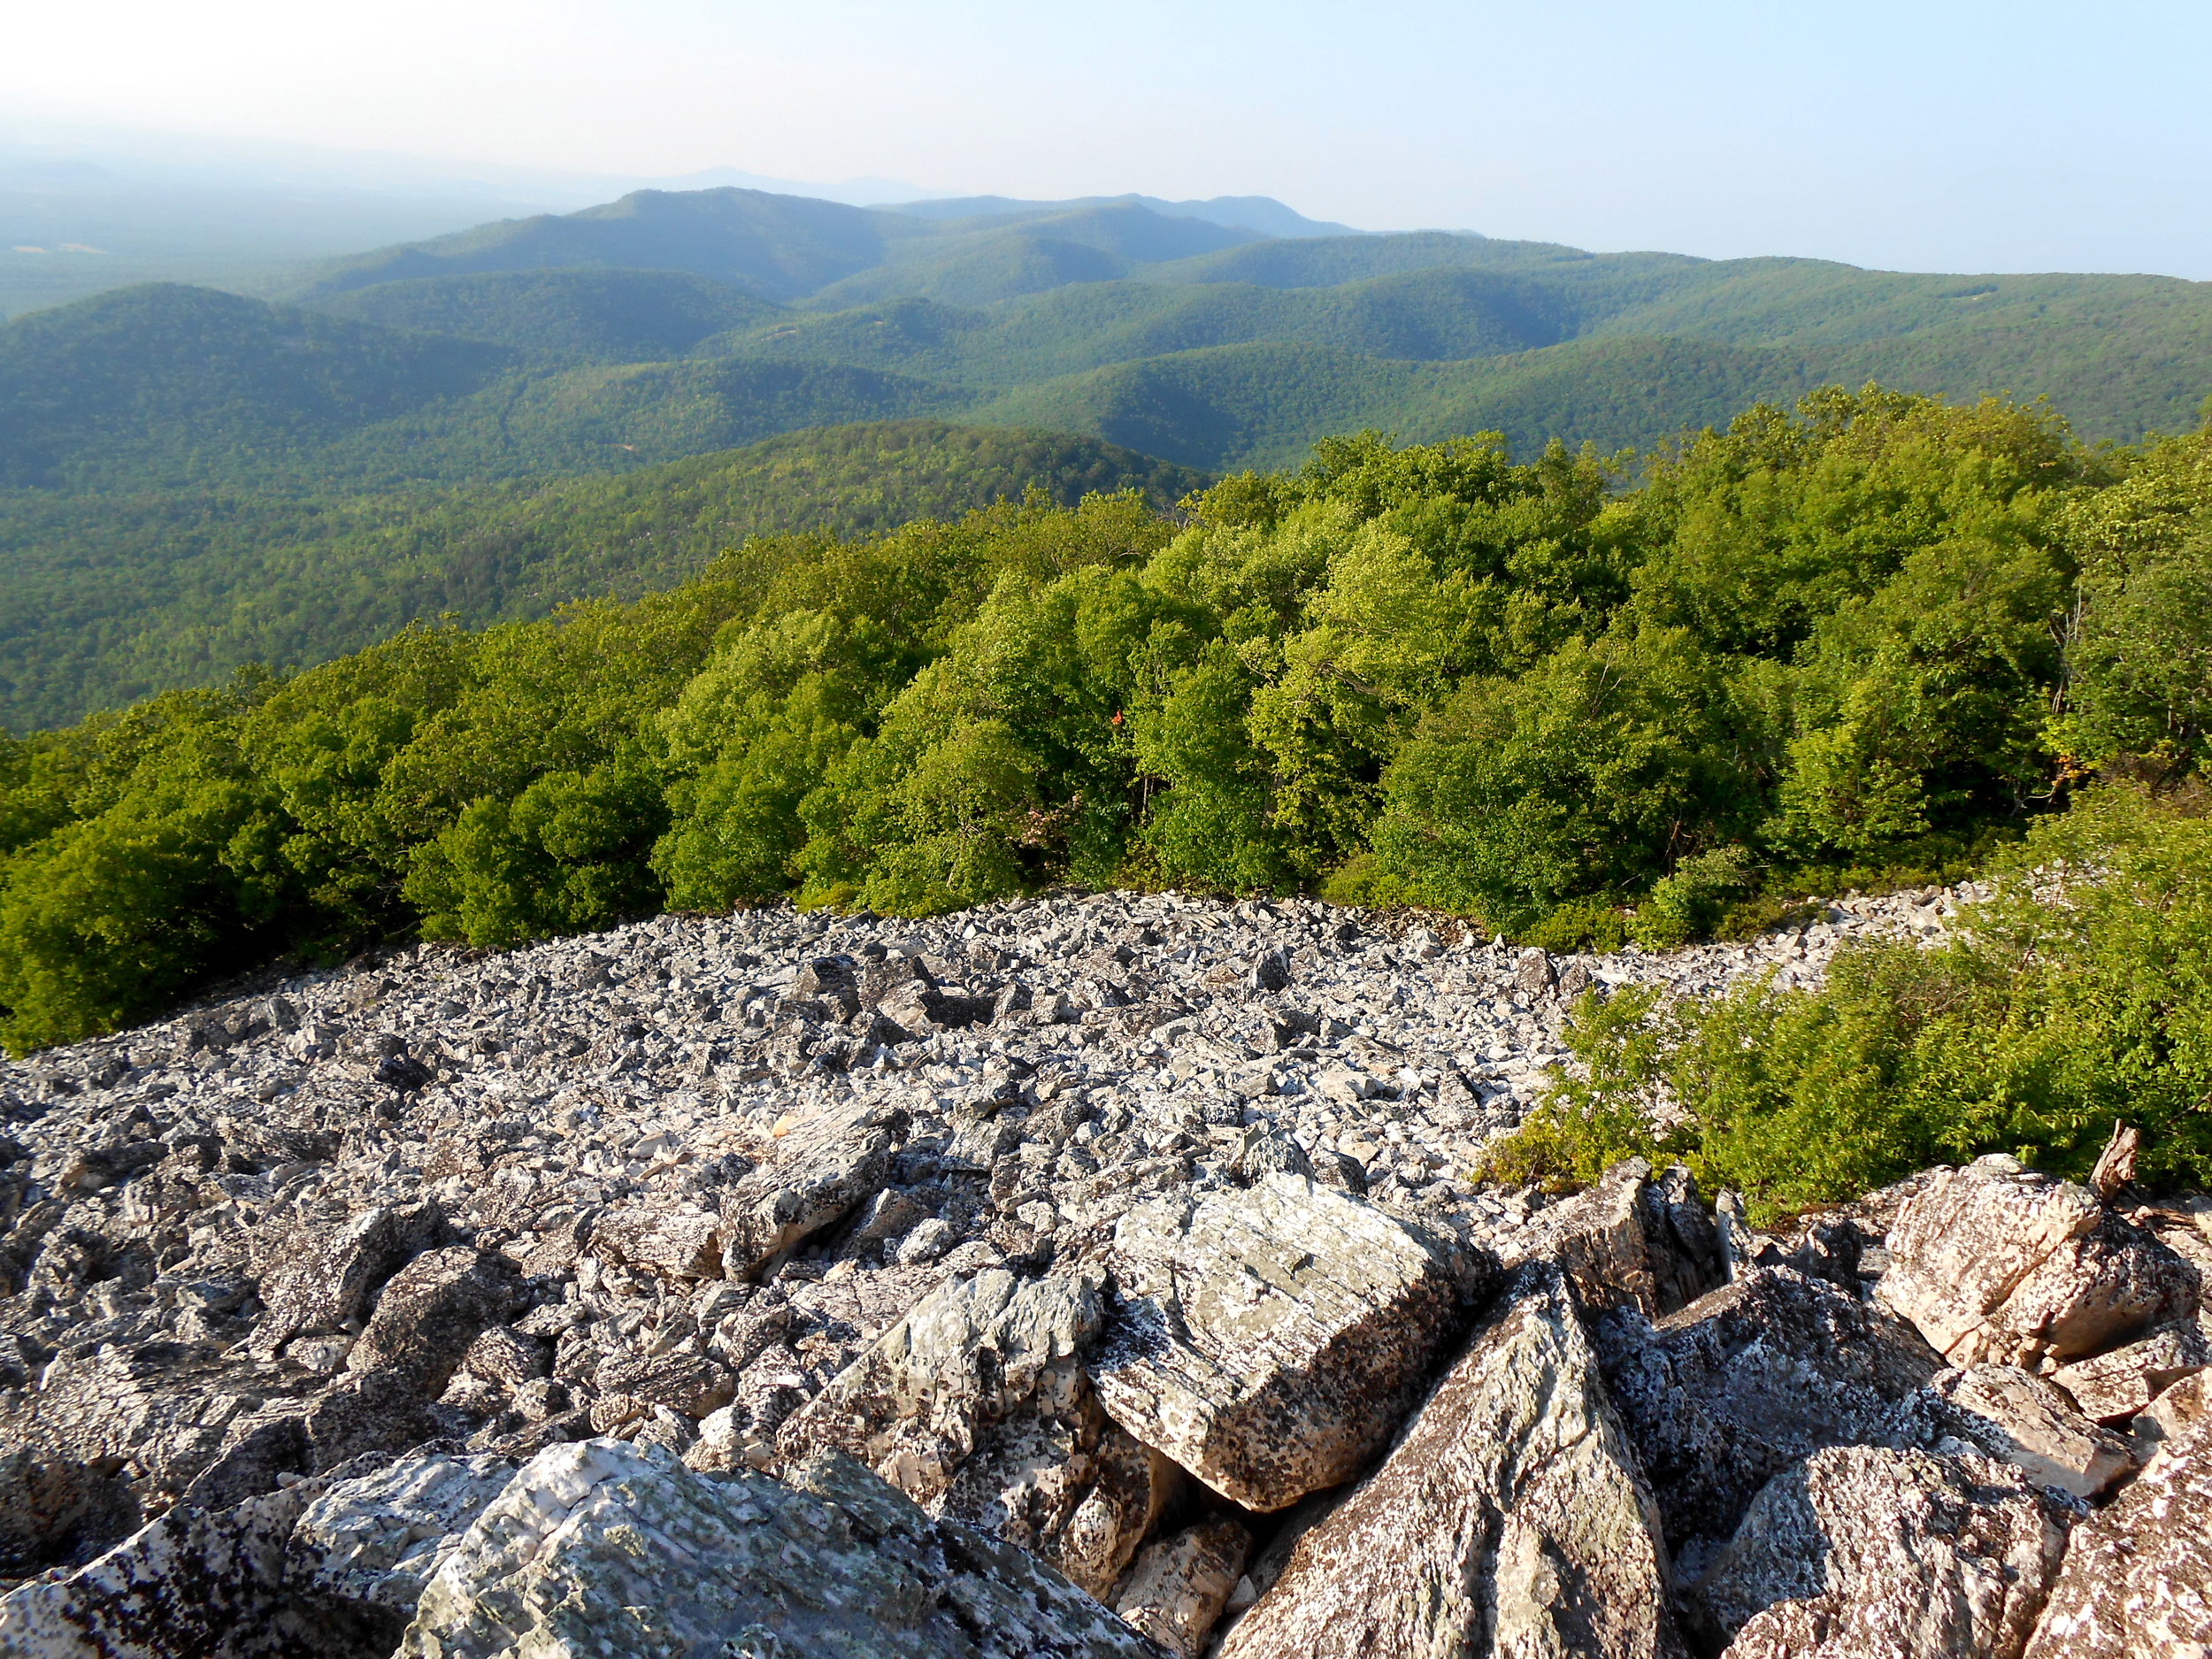 View from the top of Turk Mountain.